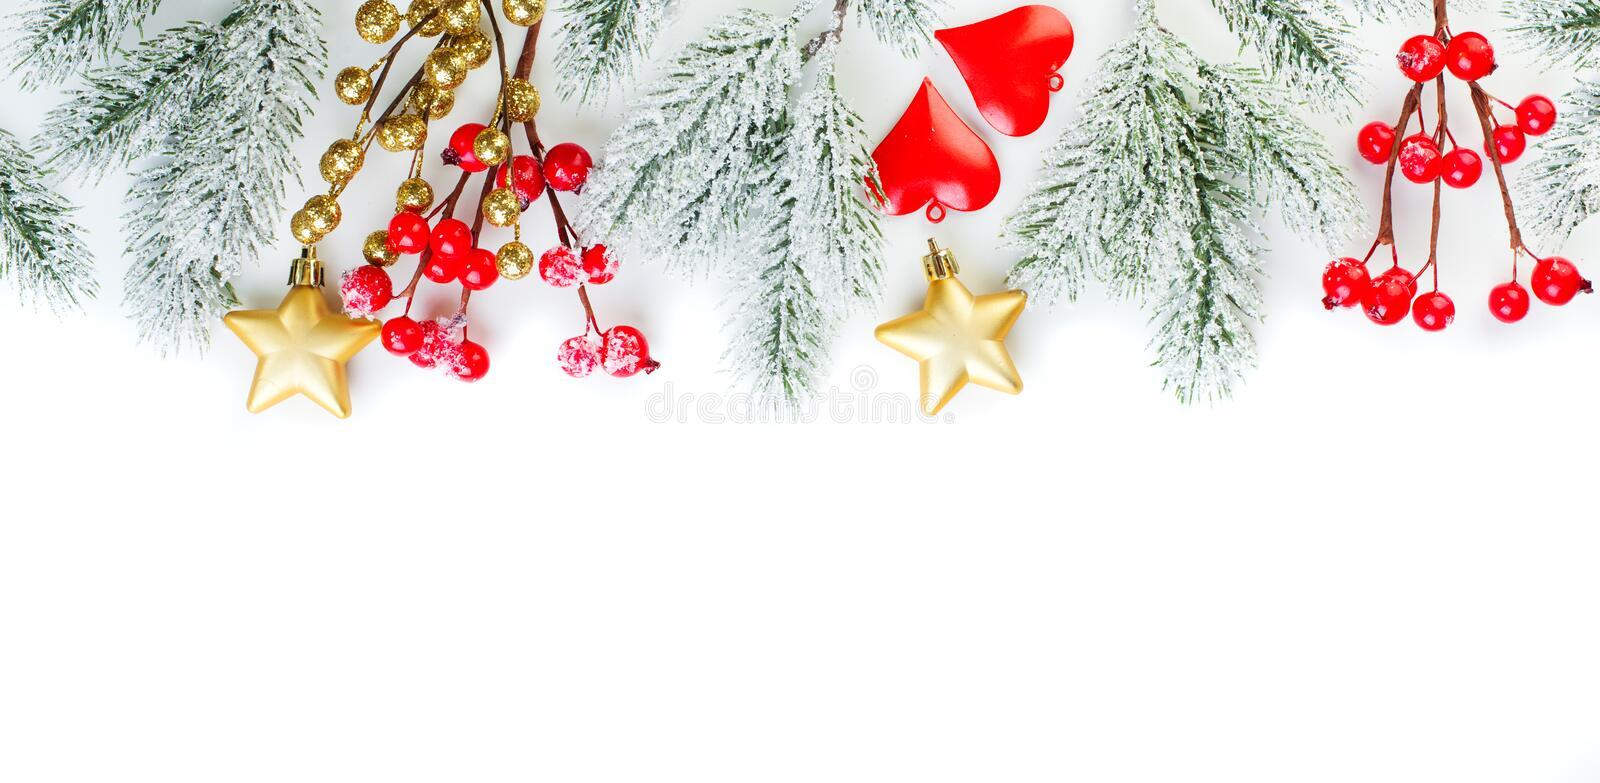 Christmas decor border. Green Xmas fir branch, gold stars, red holly berries and glass baubles isolated on white background royalty free stock photos